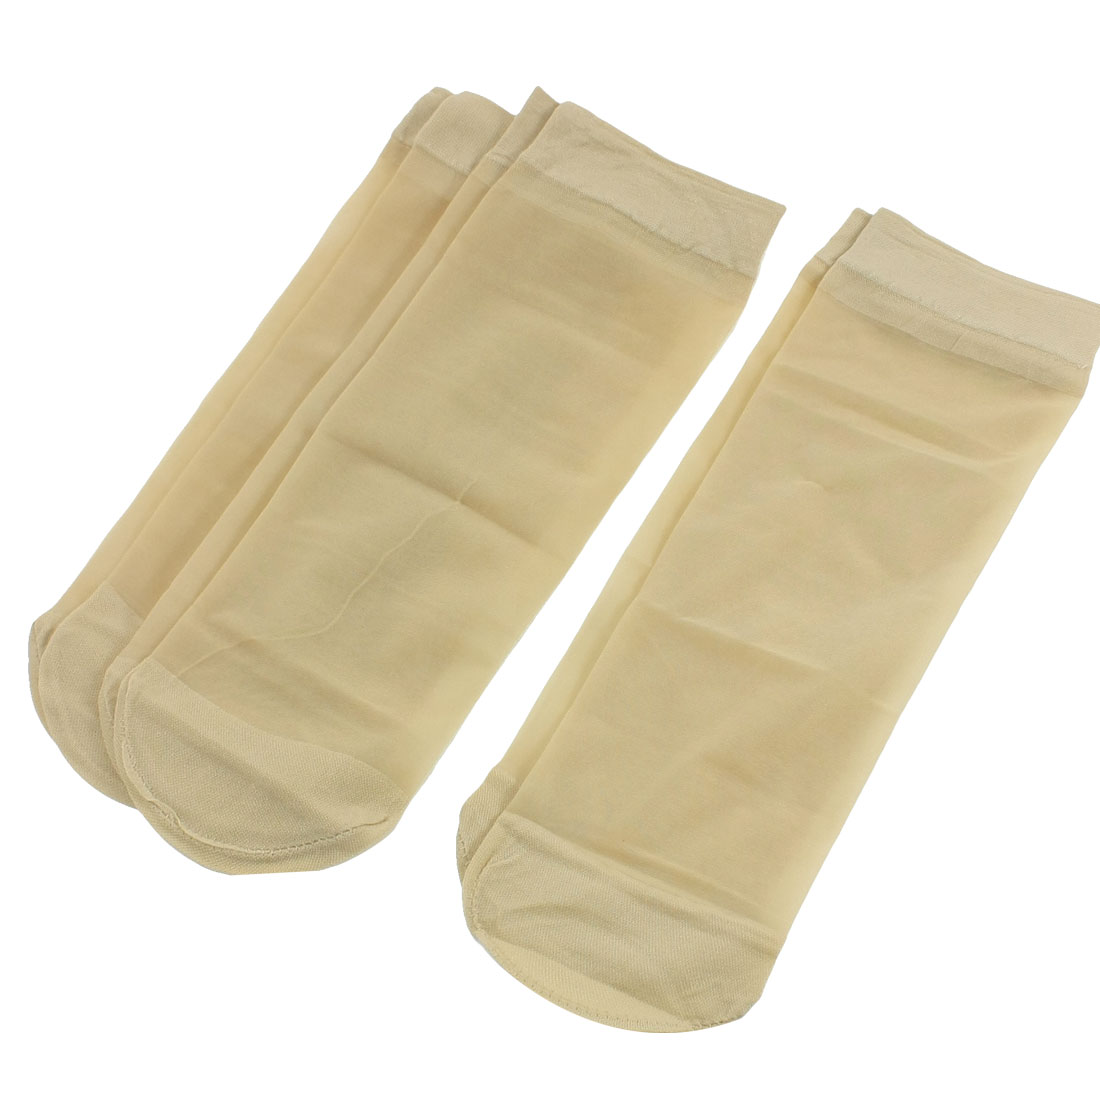 3 Pairs khaki Color Elastic Ankle High Summer Sheer Socks for Lady